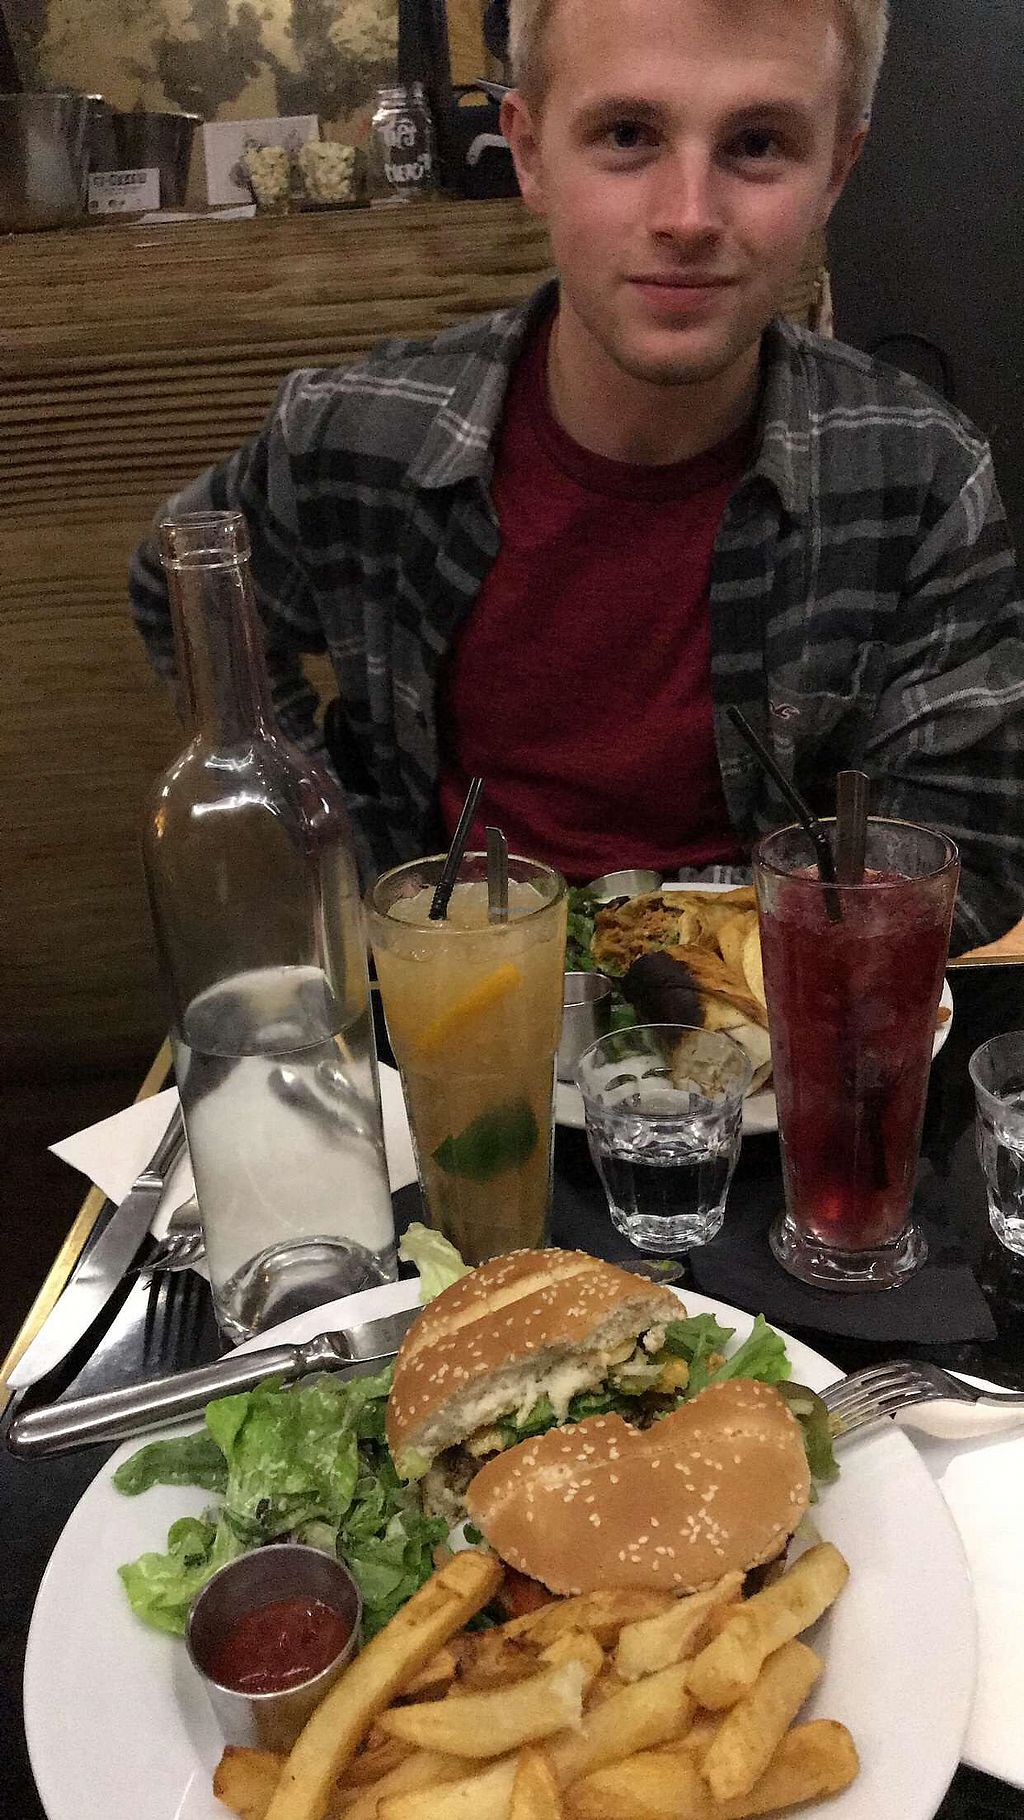 """Photo of Brasserie 2eme Art  by <a href=""""/members/profile/kipear"""">kipear</a> <br/>the kebab maison and the vegan cheese burger!!!!! also had Jamaican mule and the lola for drinks; the lola was incredible <br/> October 14, 2017  - <a href='/contact/abuse/image/73690/314977'>Report</a>"""